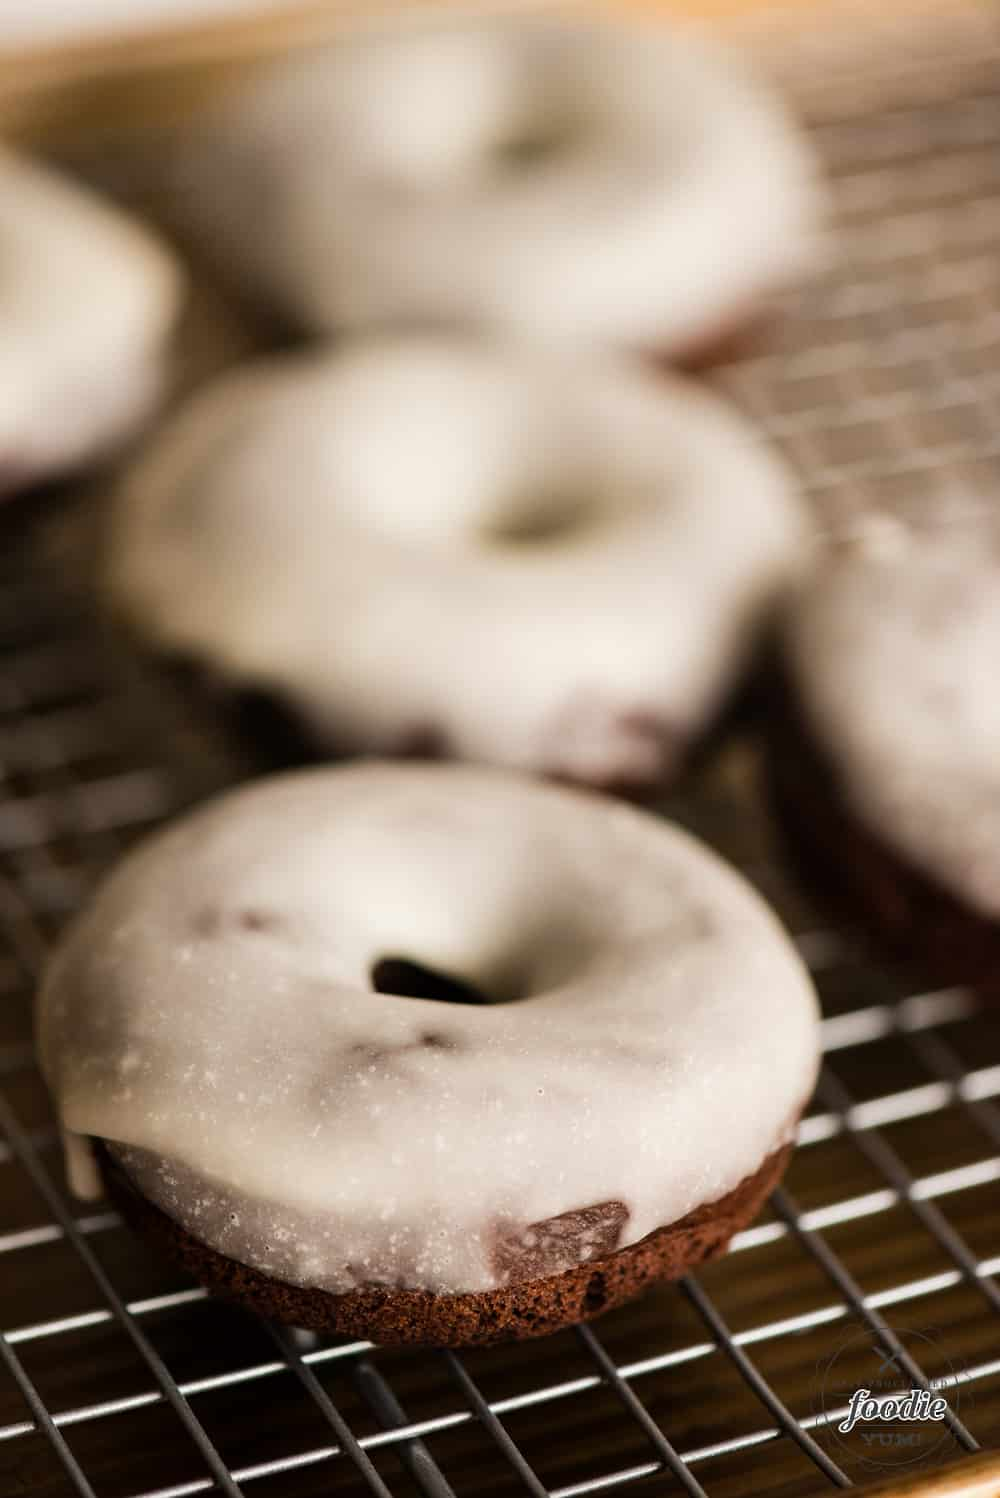 A close up of a baked chocolate glazed donut